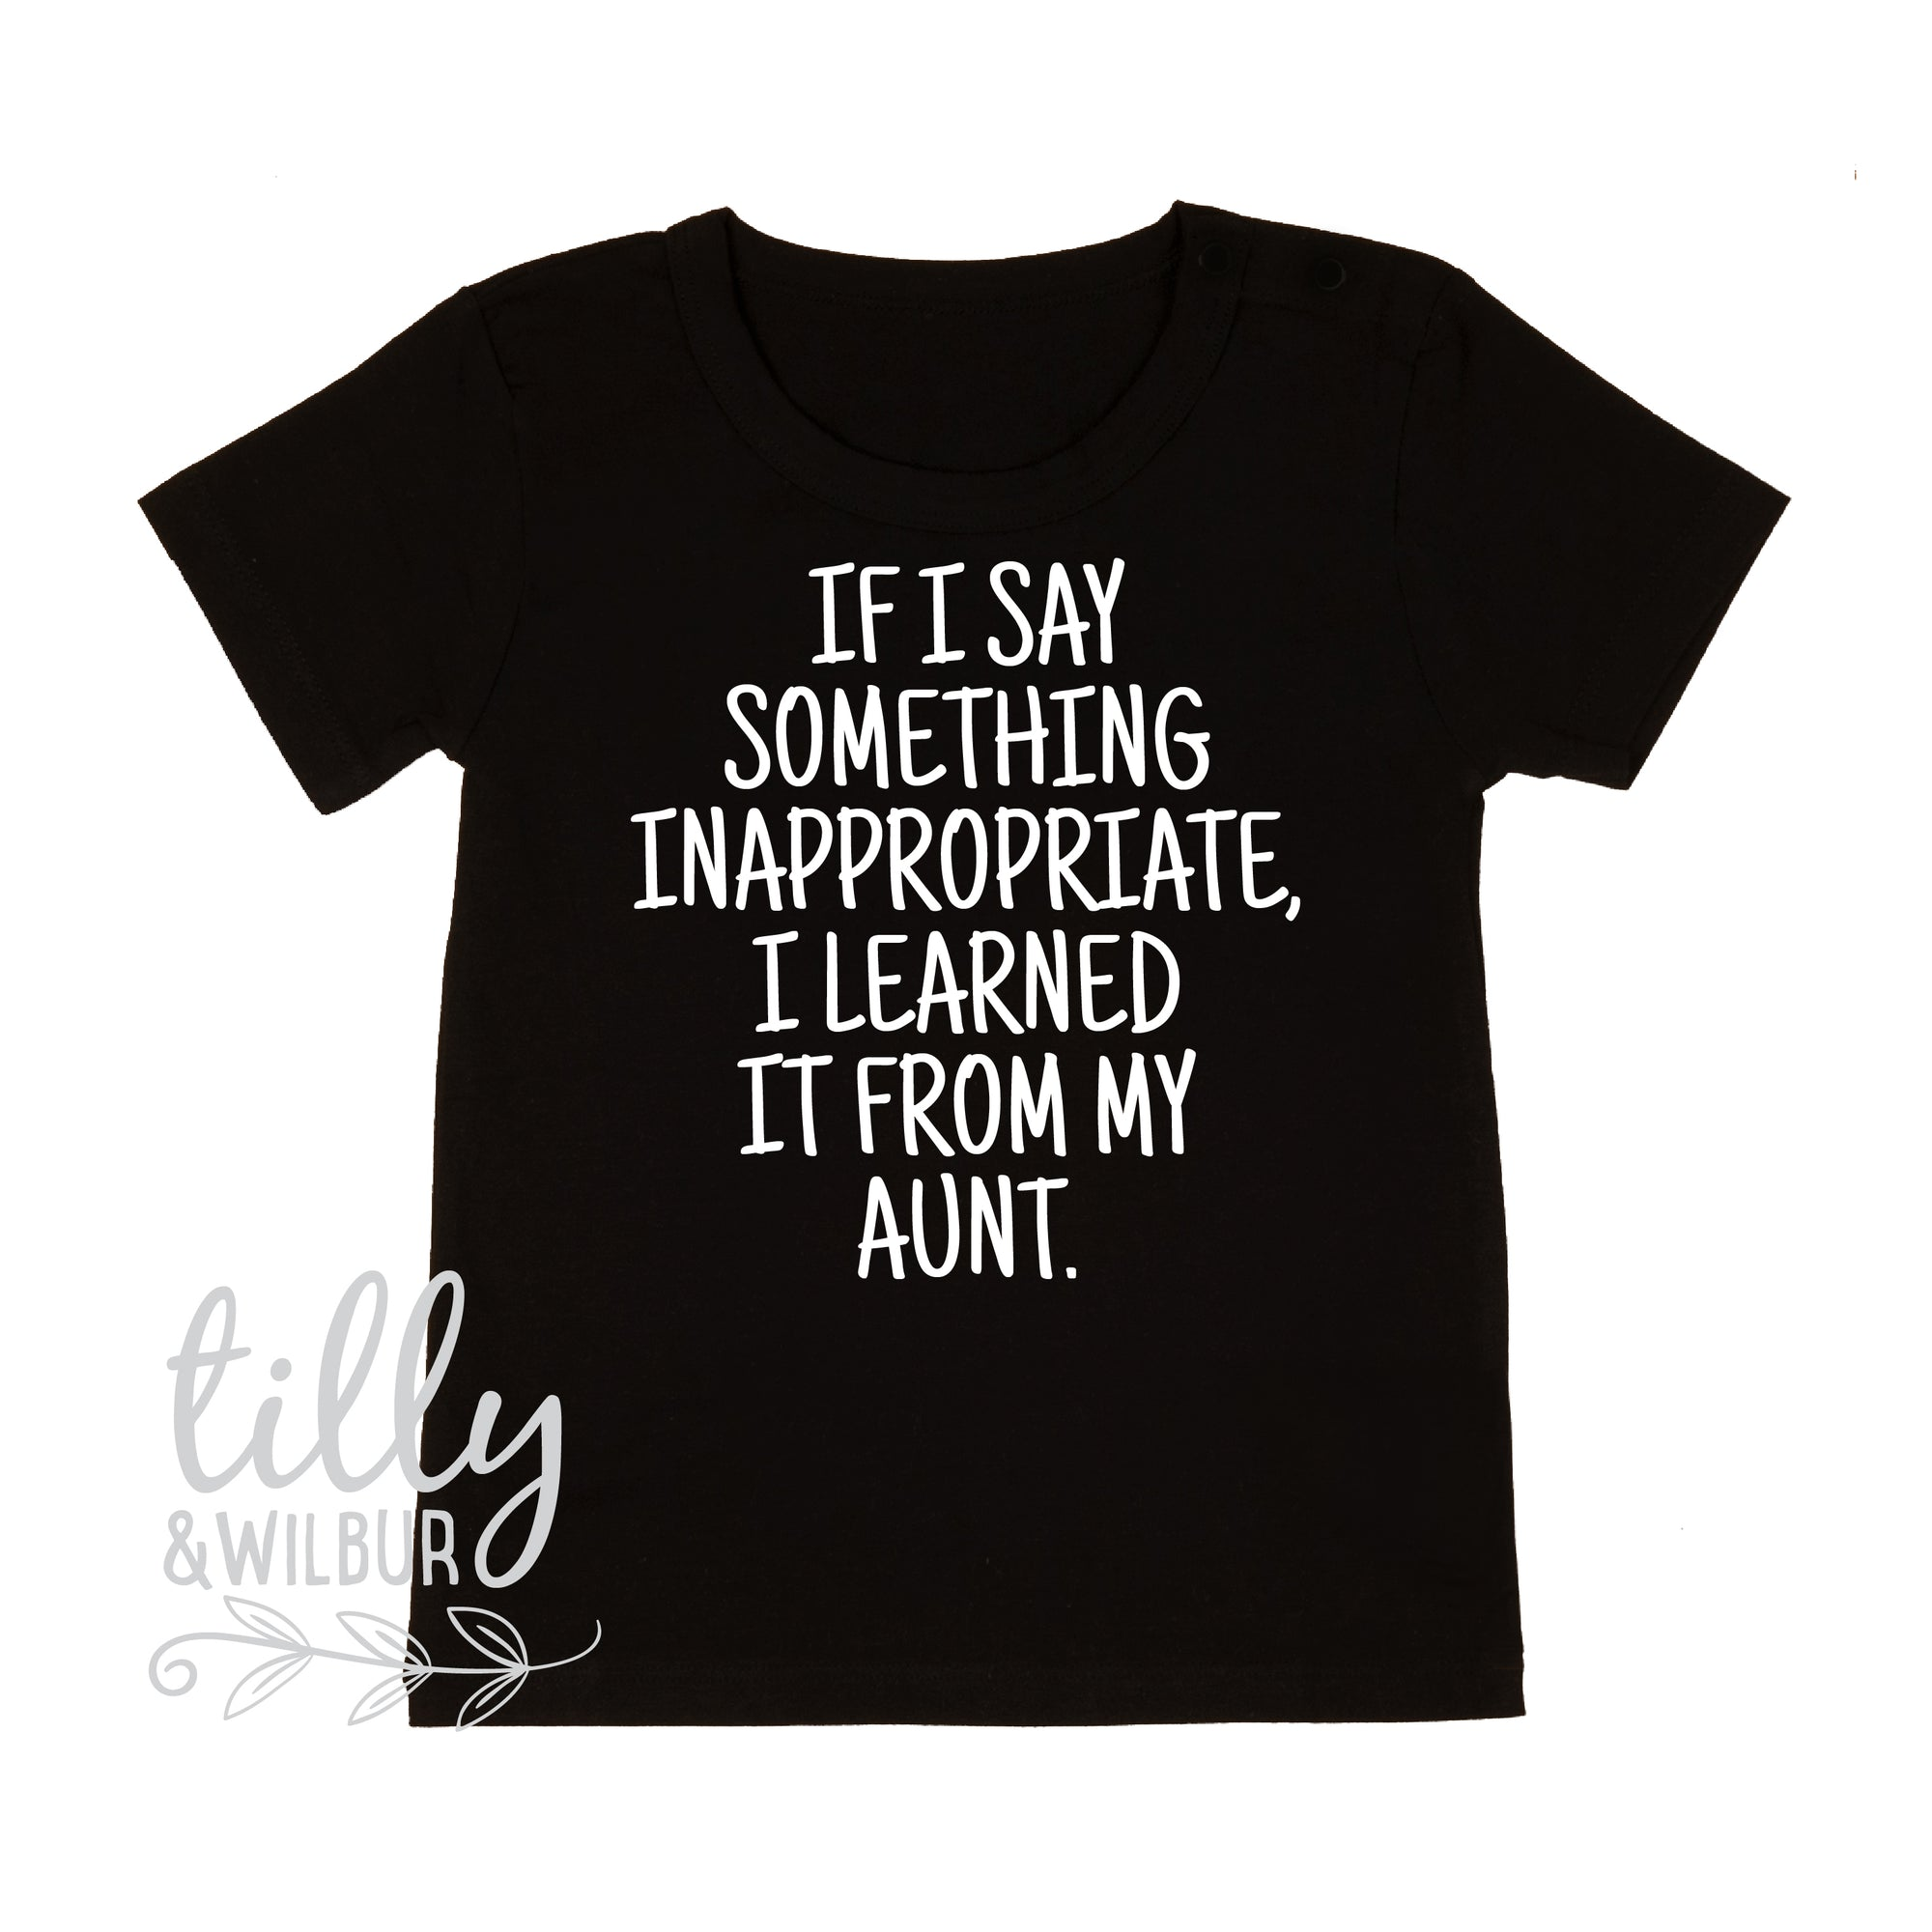 If I Say Something Inappropriate, I Learned It From My Aunt Kids Tee